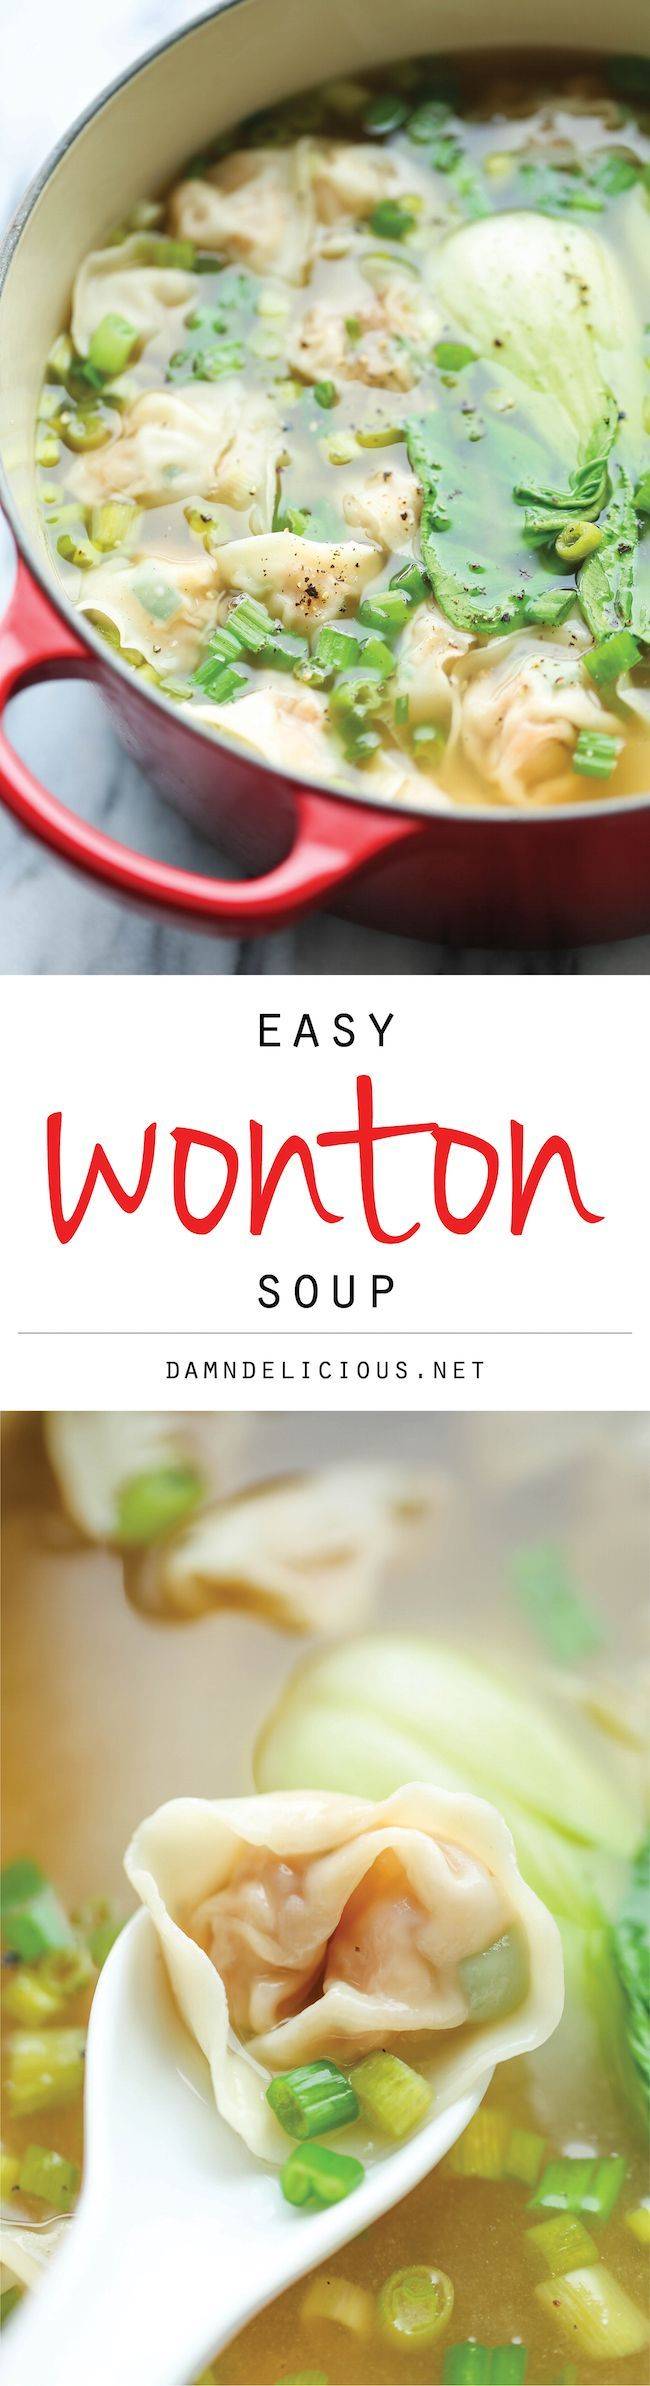 how to make wonton soup video